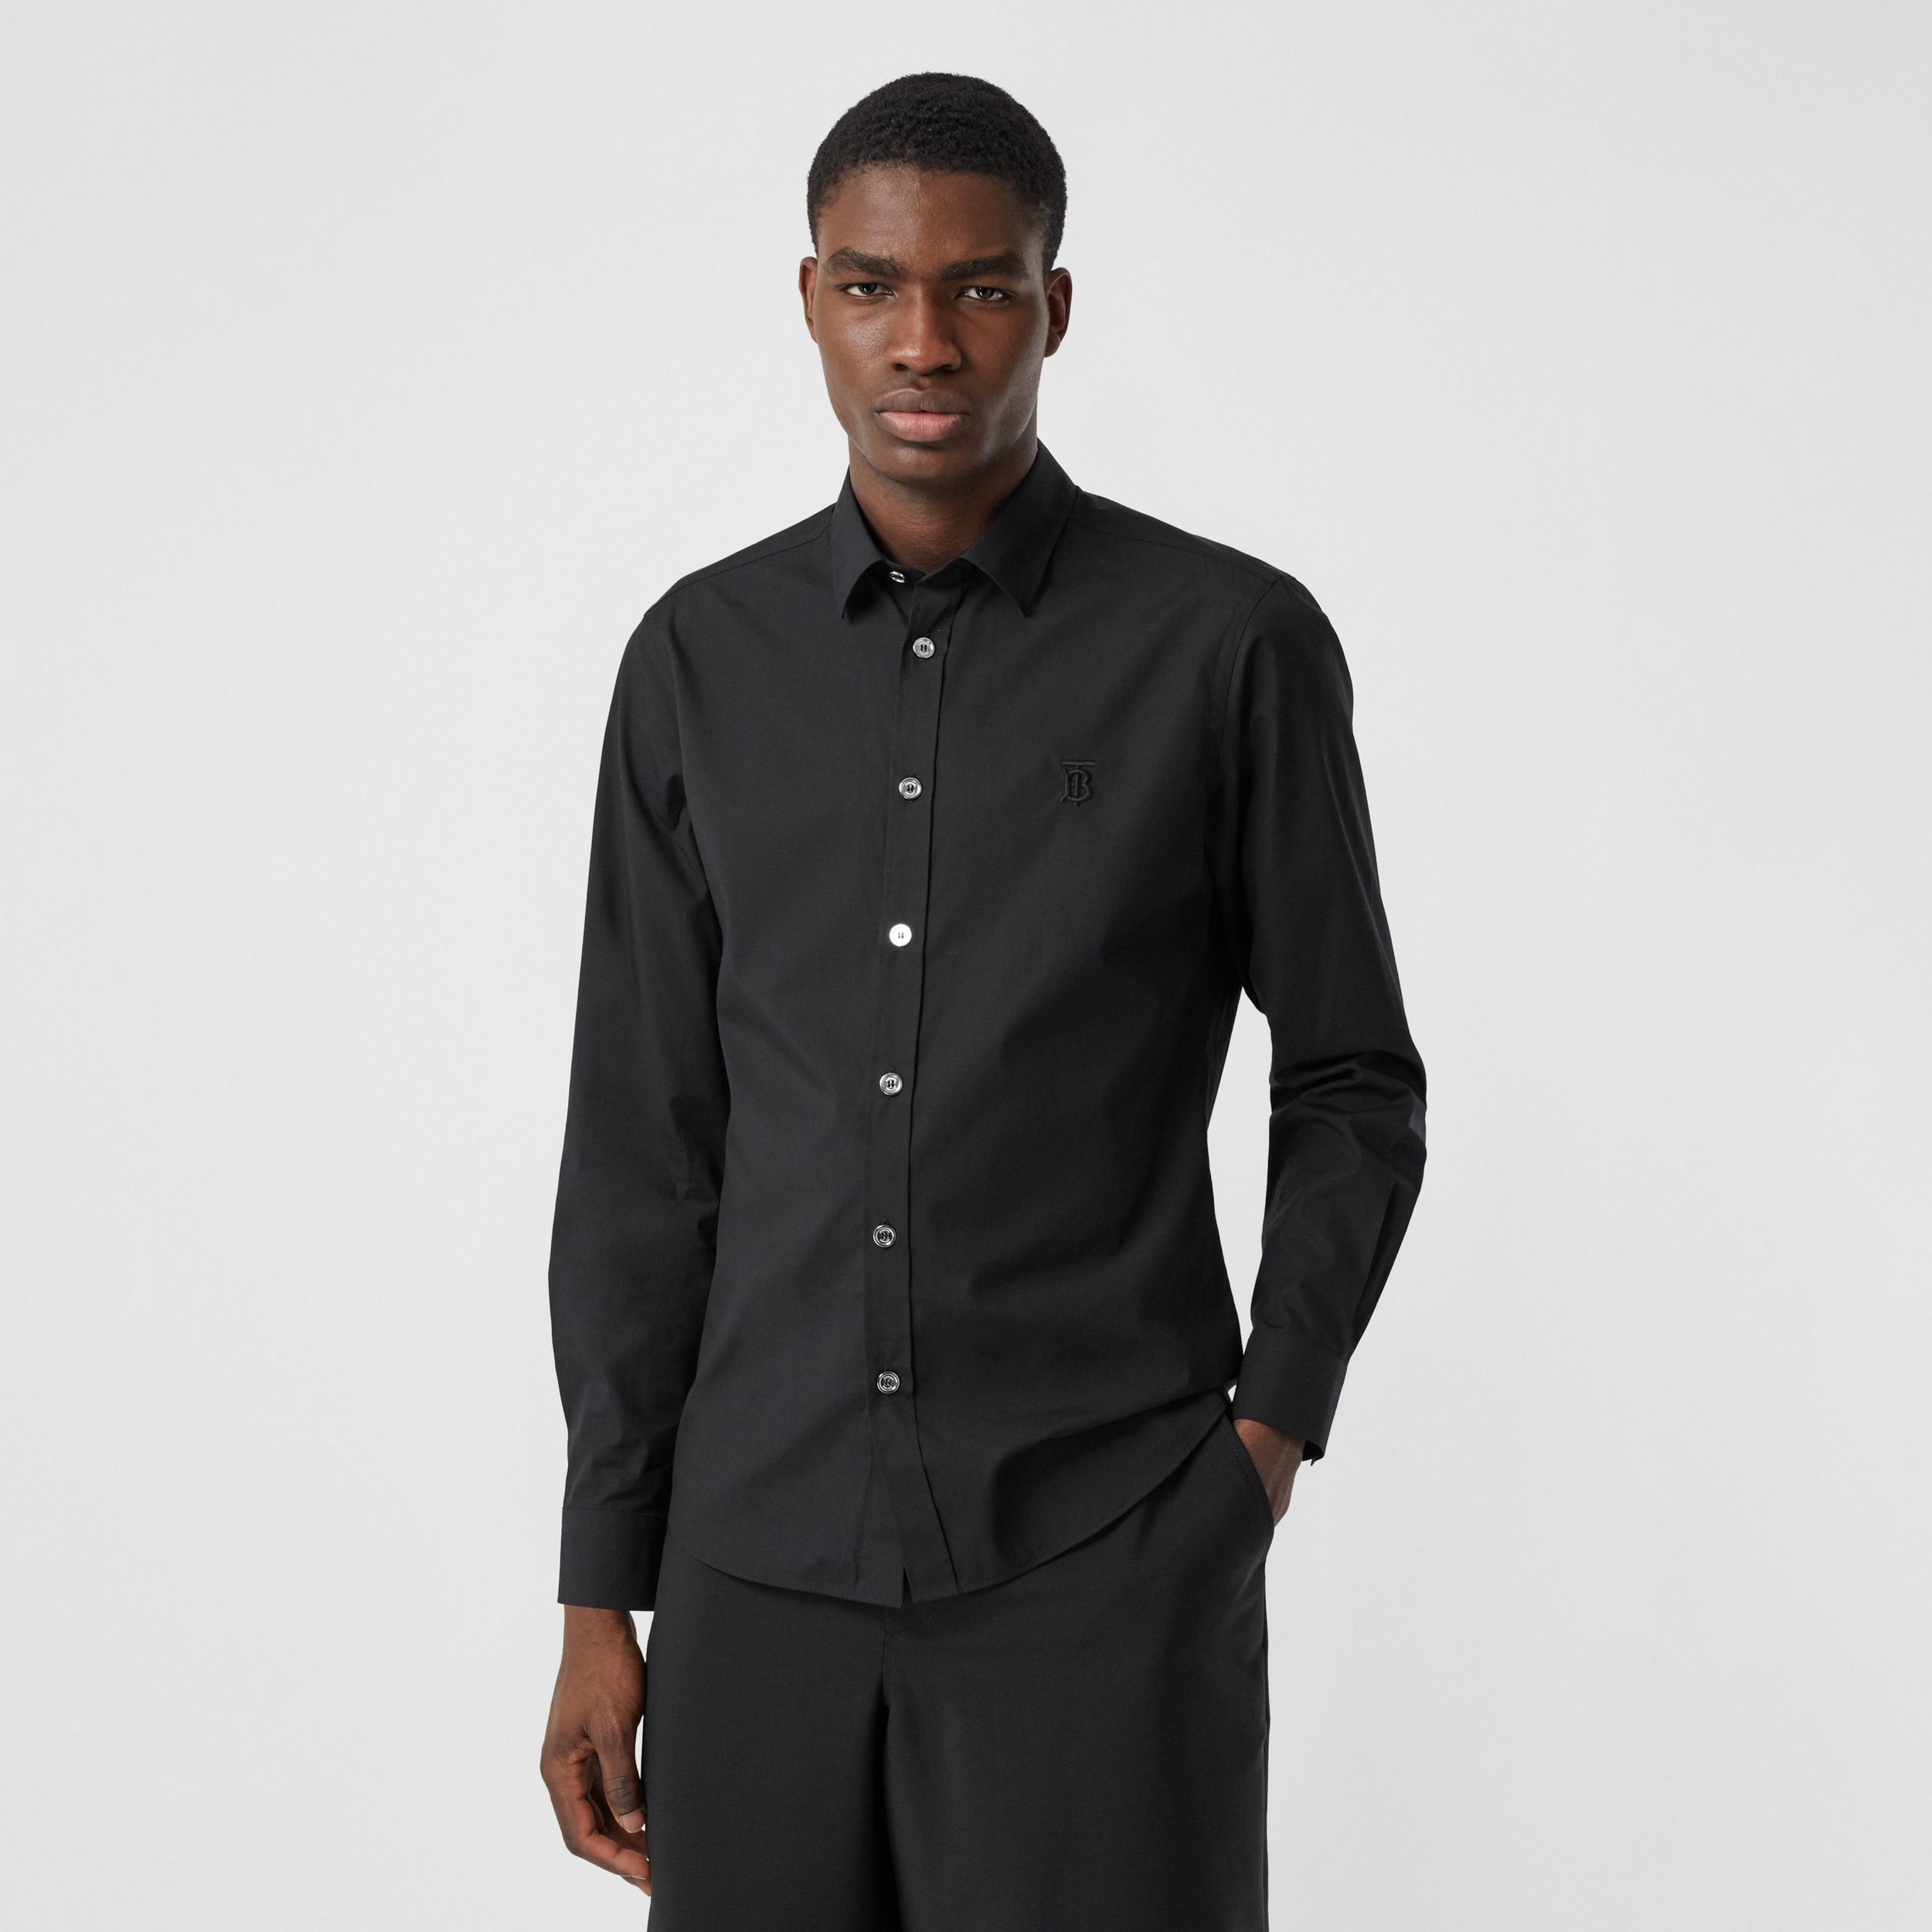 Monogram Motif Stretch Cotton Poplin Shirt in Black - Men | Burberry Australia - 1